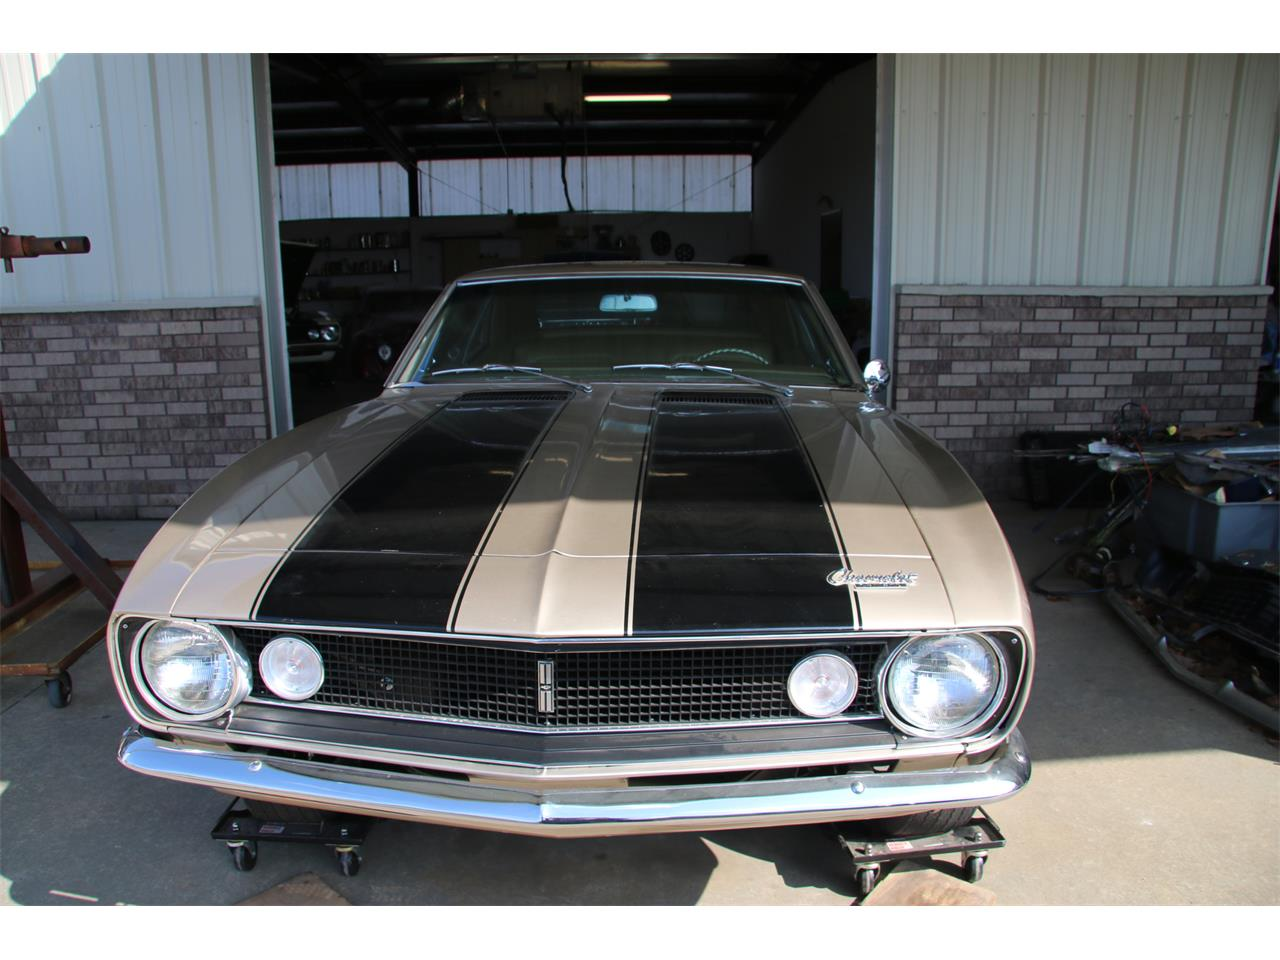 1967 Chevrolet Camaro Z28 for sale in Scottsdale, AZ – photo 2